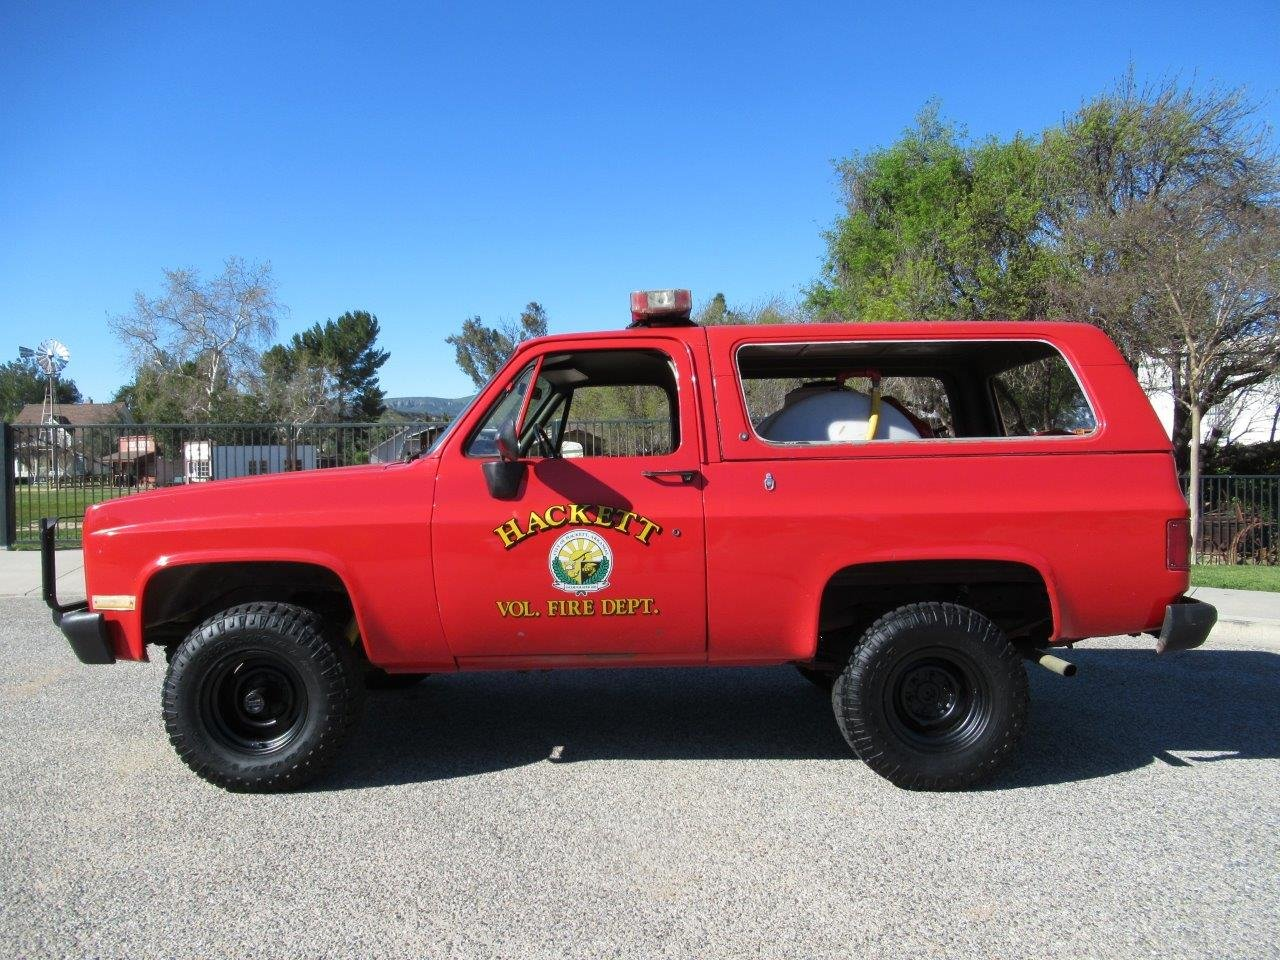 1985 Chevrolet Blazer D10/M1009 For Sale (picture 1 of 6)